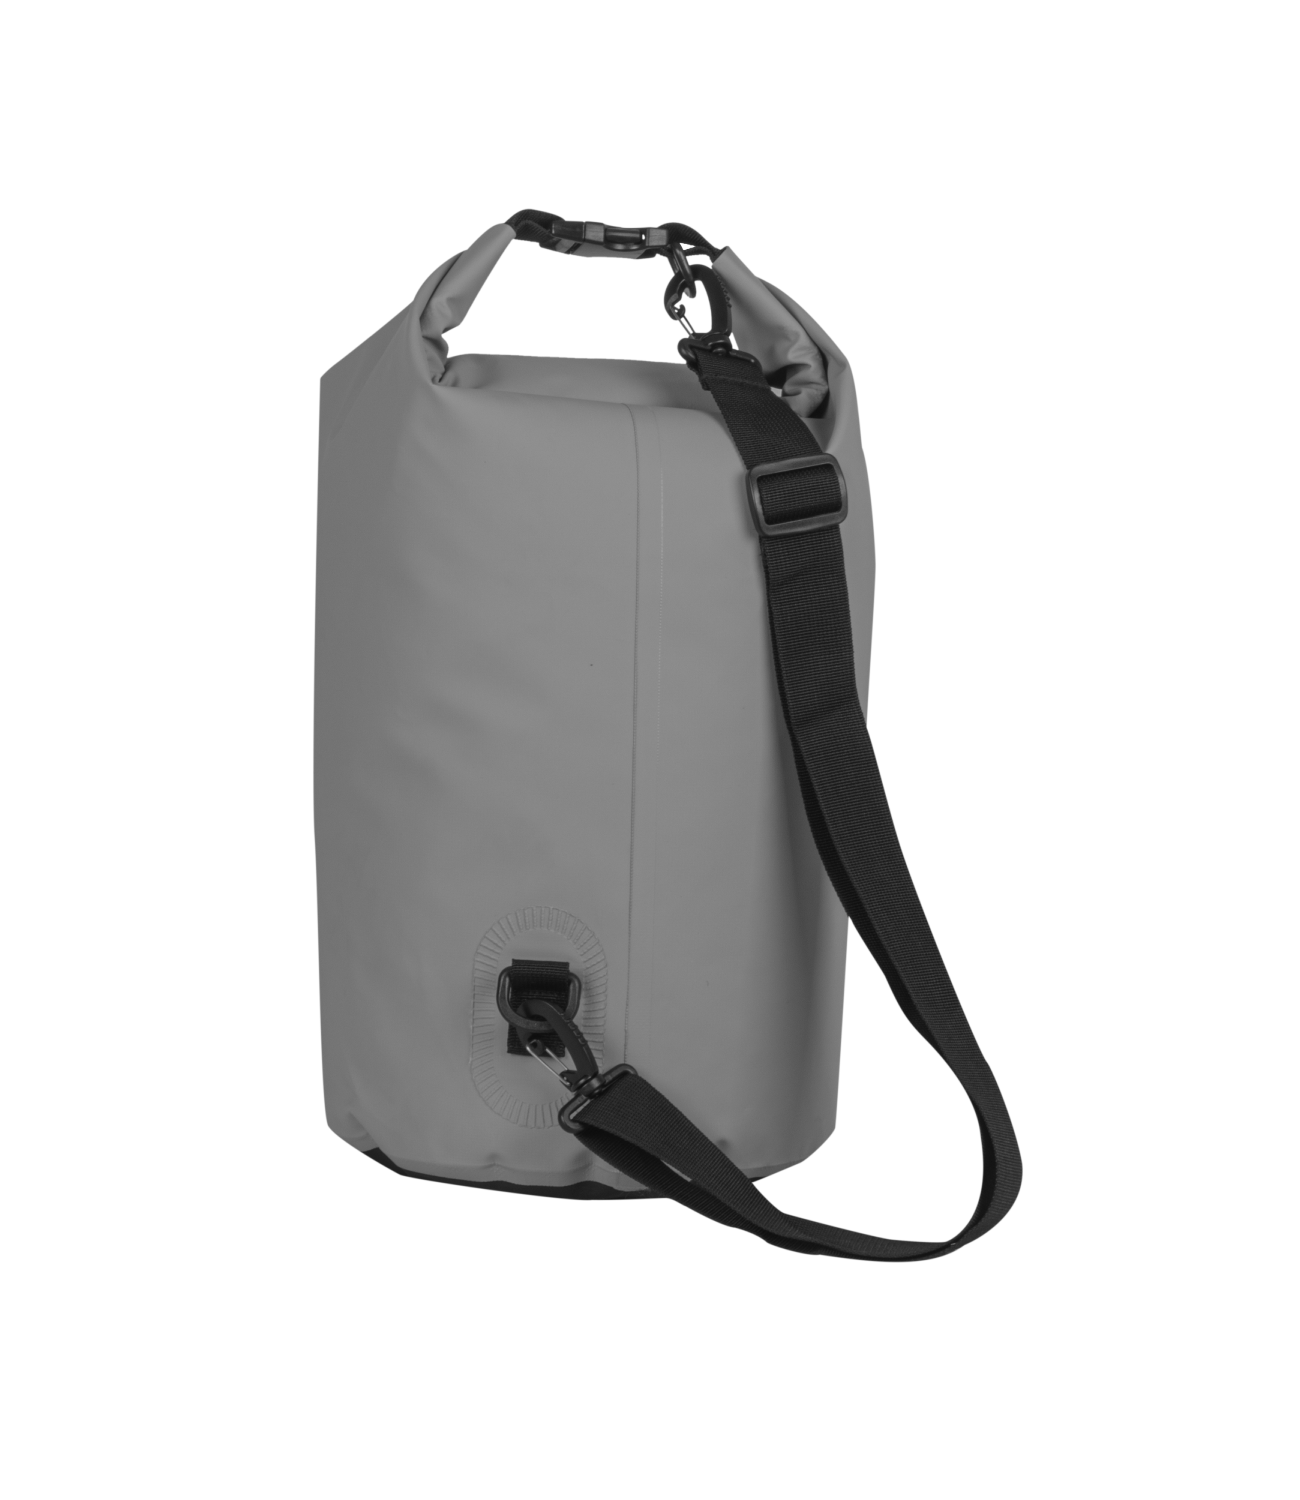 EXPEDITION DRY BAG 2 - STORMPROOF - Rynox Gears -